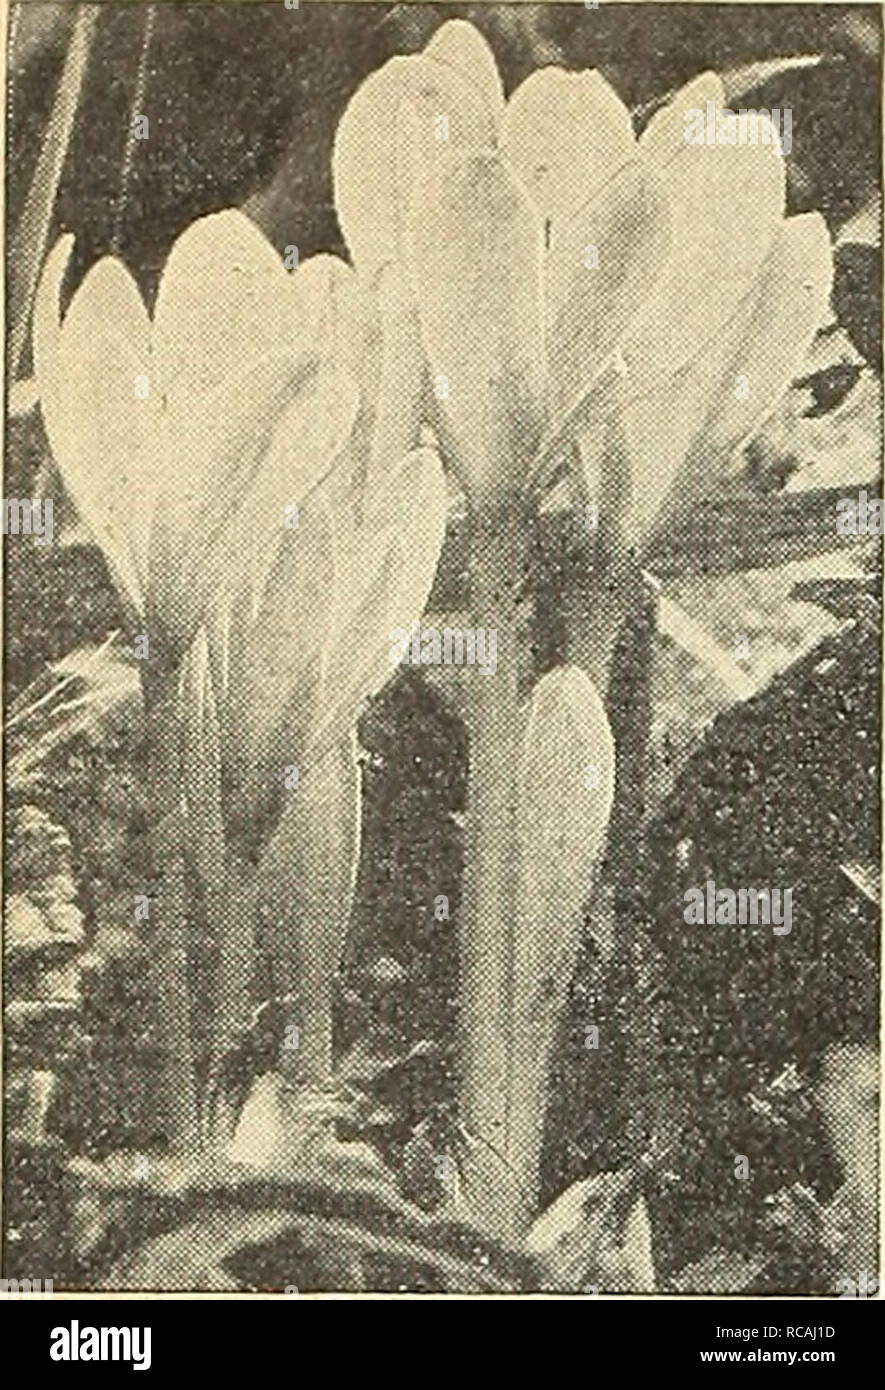 Dreer S Autumn Planting Guide For 1943 Bulbs Plants Catalogs